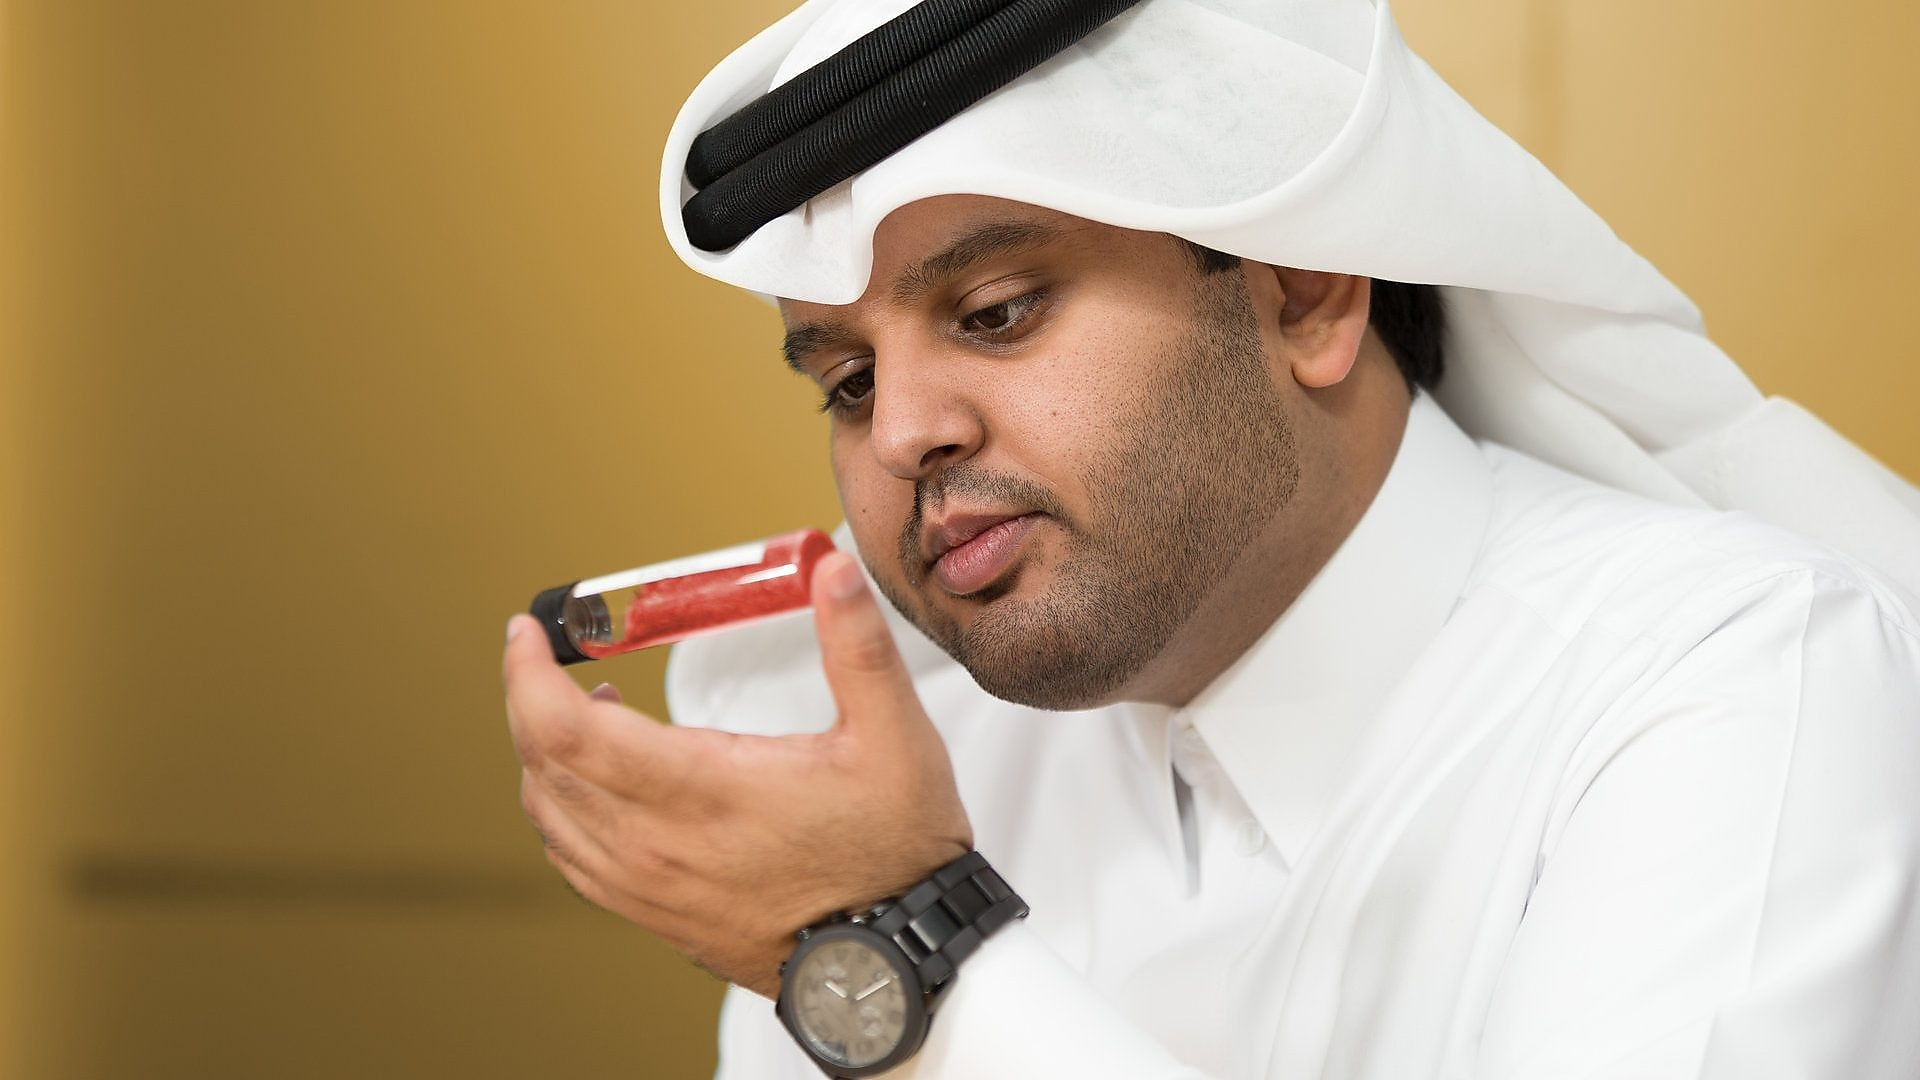 Mohammed Al Athaba, Mechanical Integrity Engineer